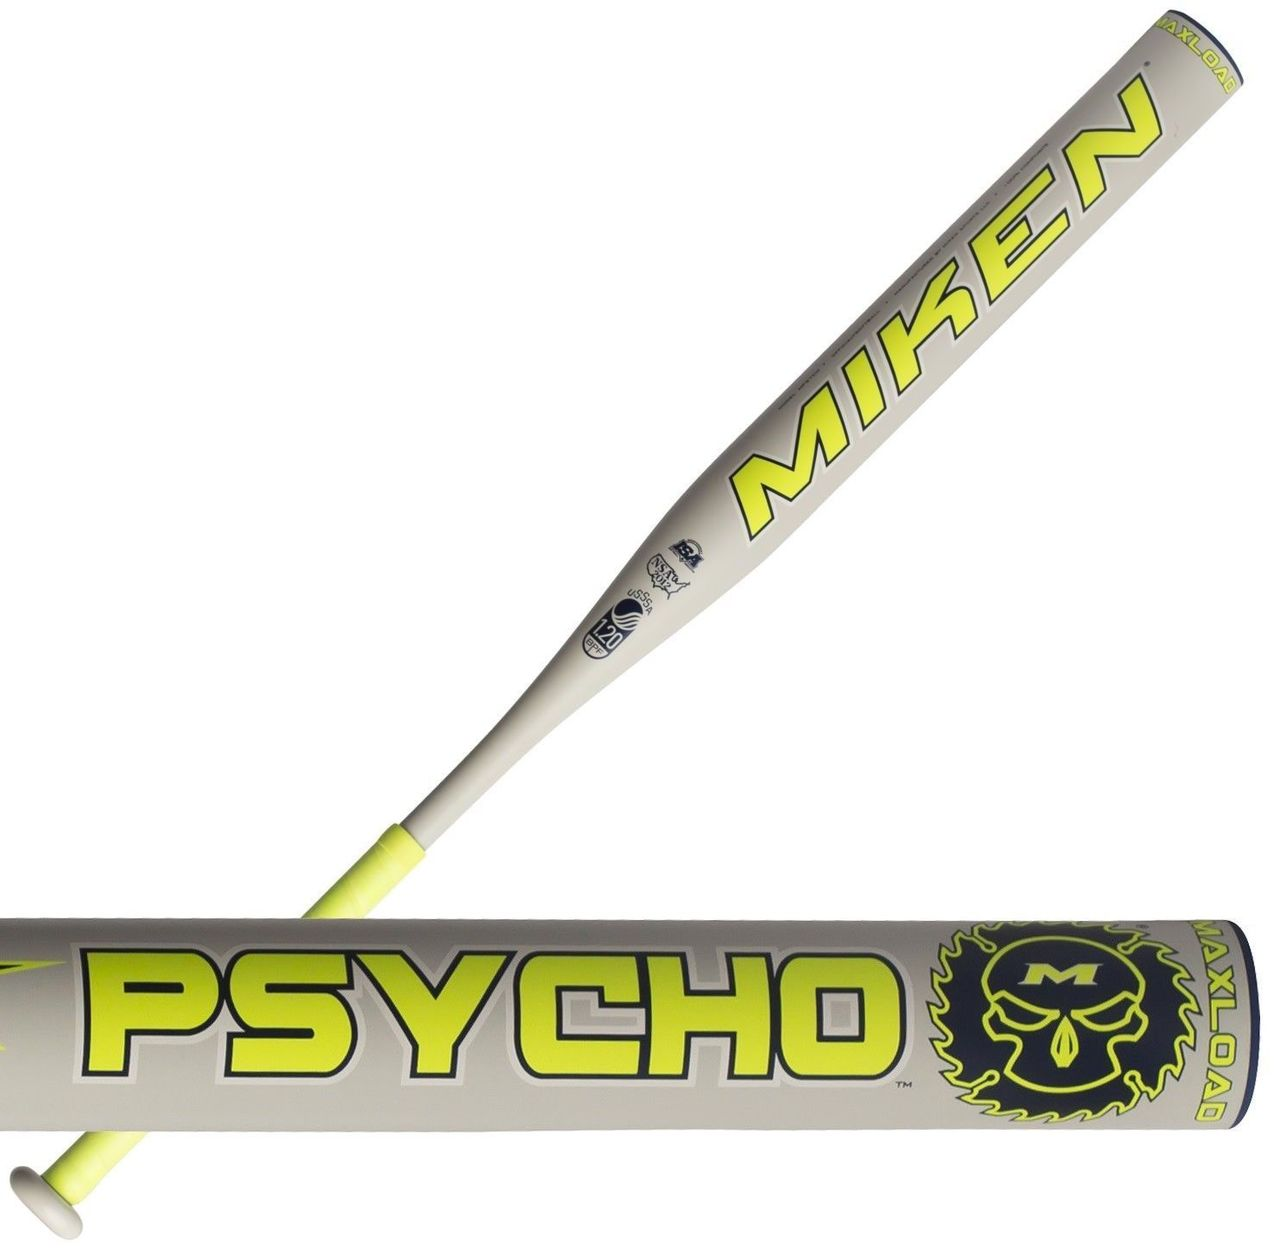 miken-psycho-max-usssa-slowpitch-softball-bat-mpsyco-34-inch-28-oz MPSYCO-3-28  658925040801 Miken one piece composite slowpitch USSSA softball bat.Miken slow pitch bats